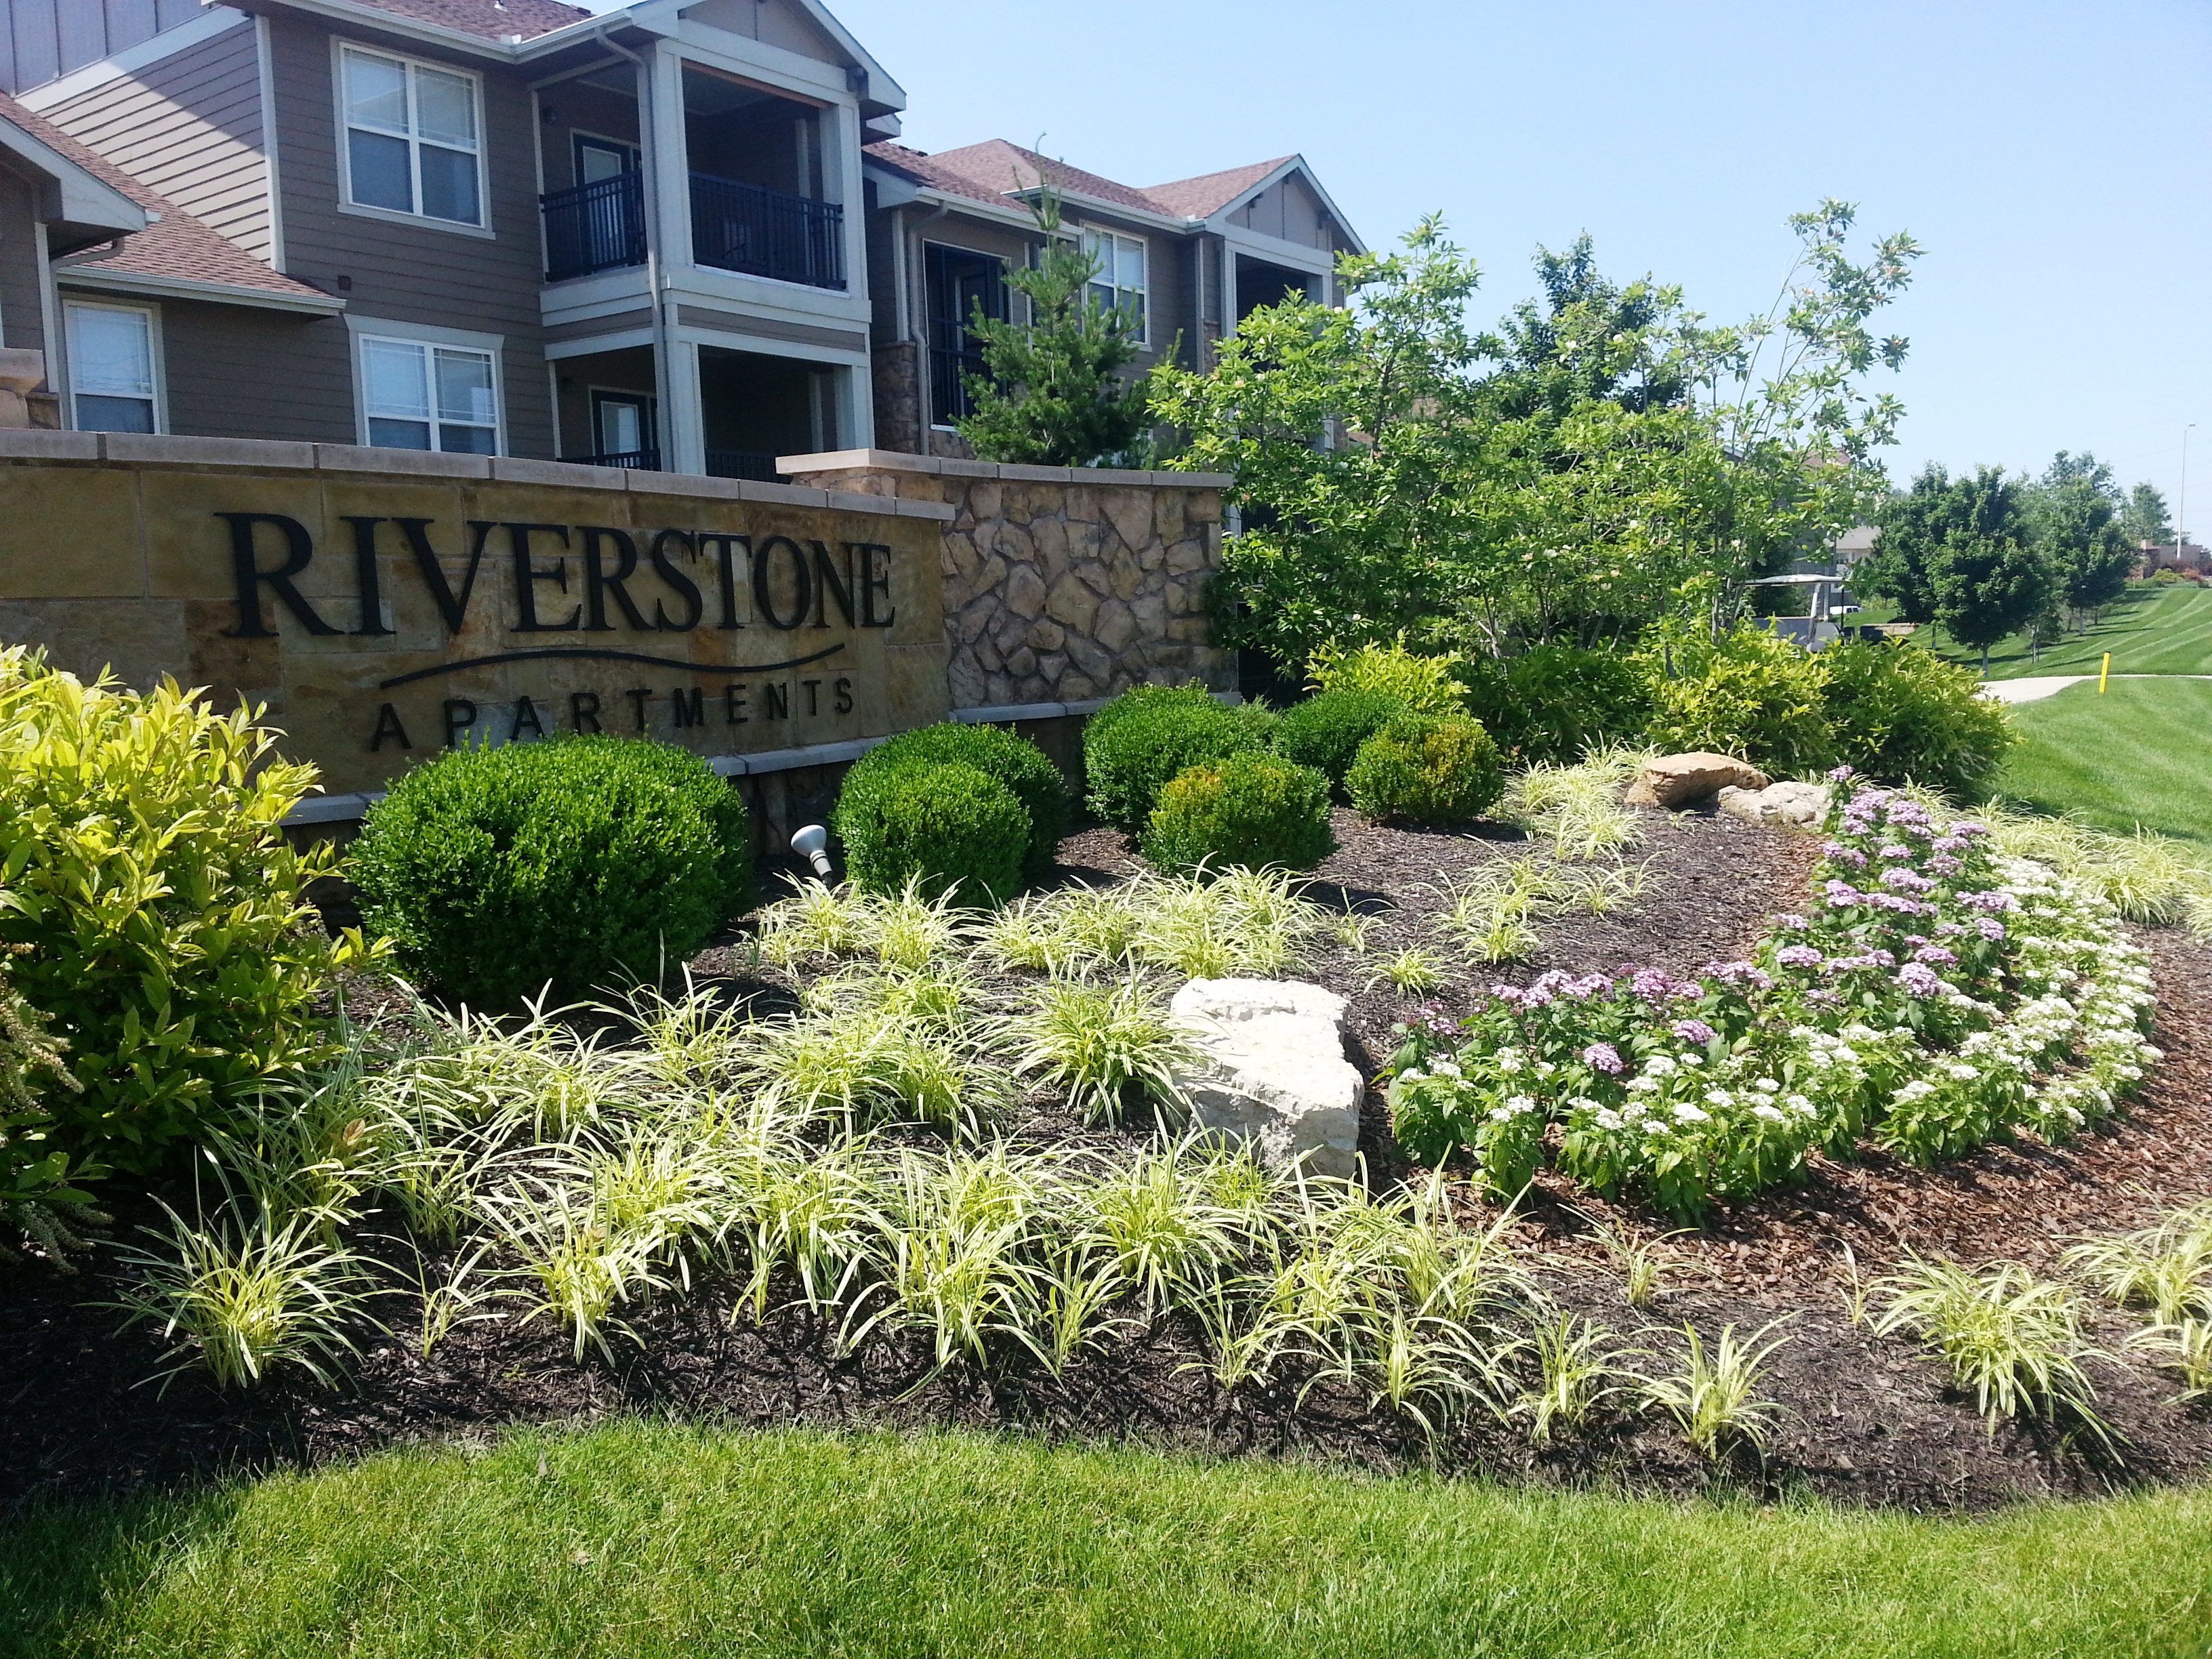 Riverstone Apartments image 12